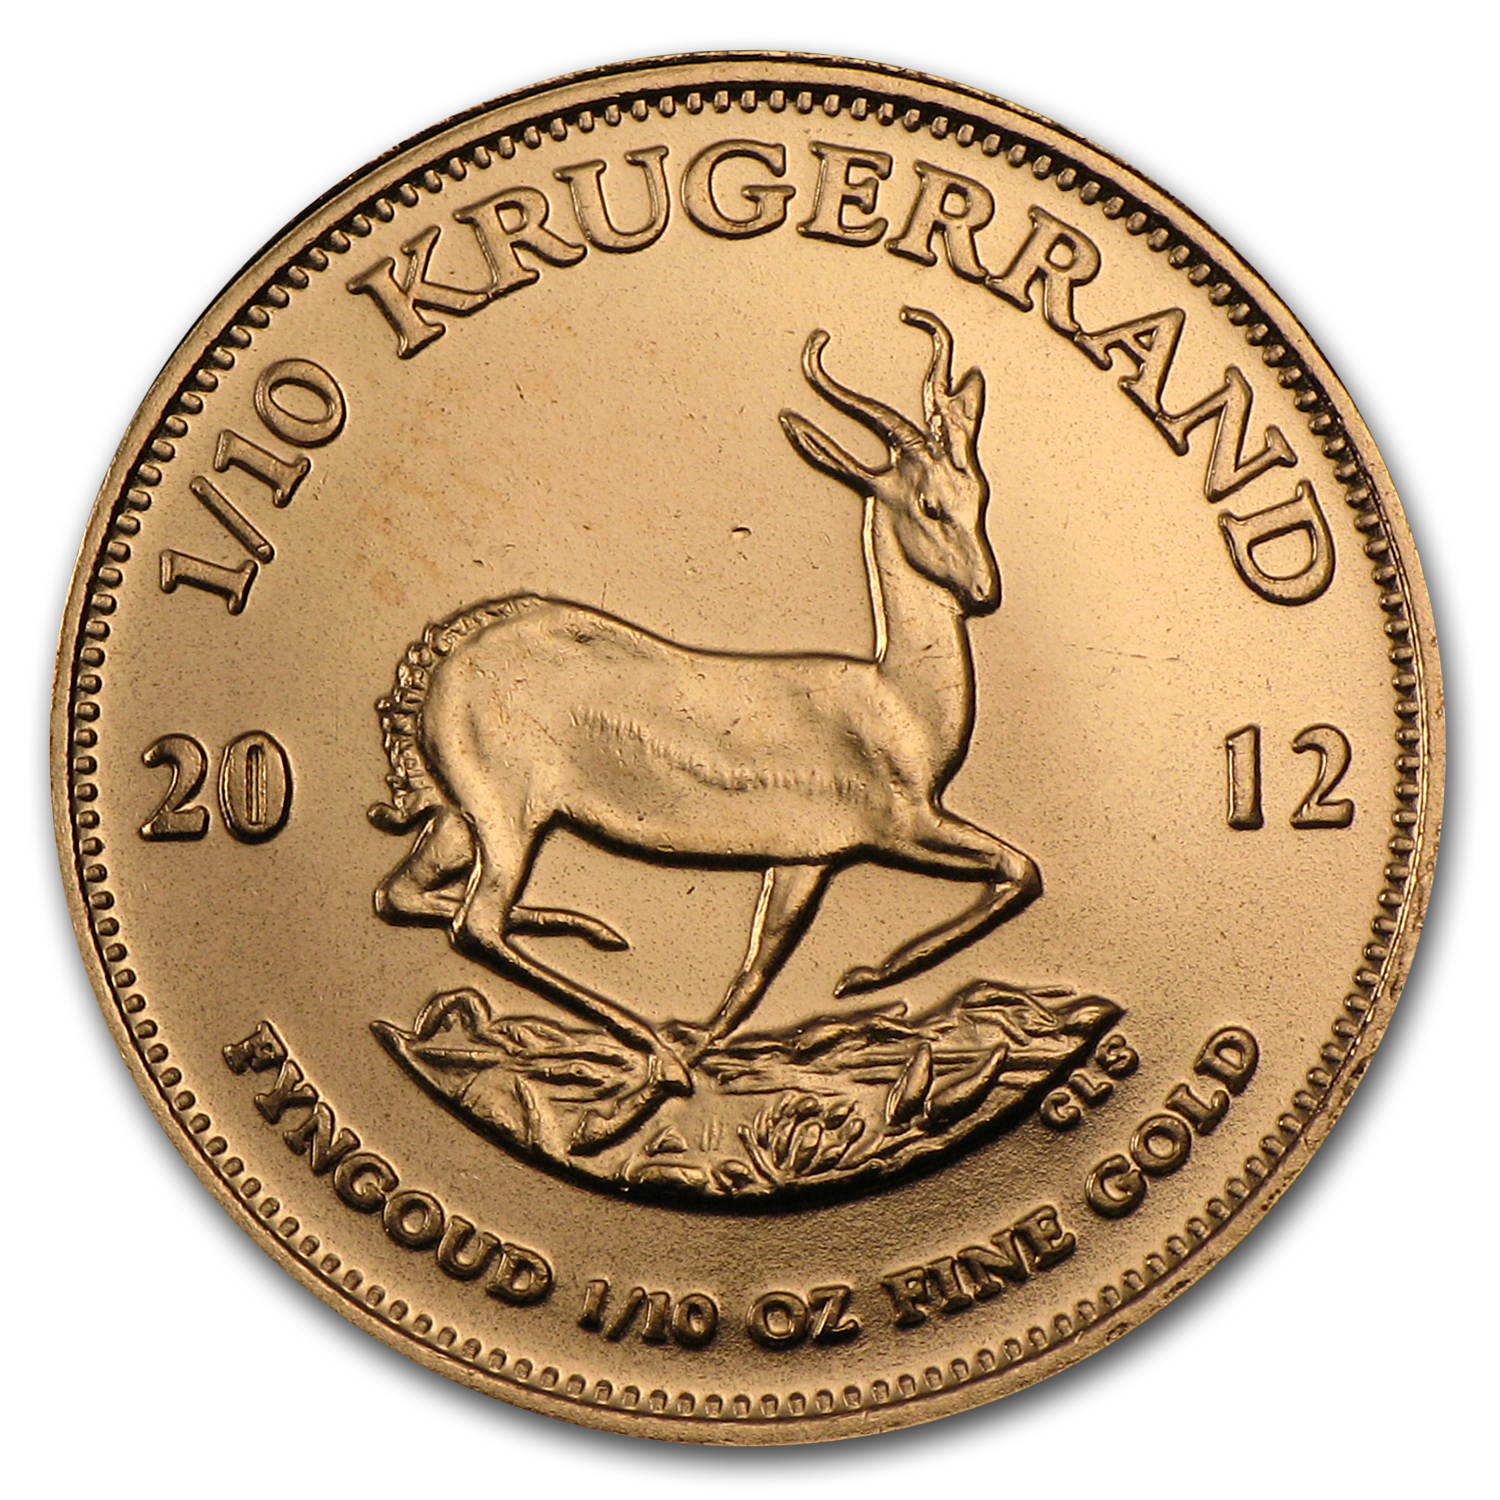 2012 South Africa 1/10 oz Gold Krugerrand